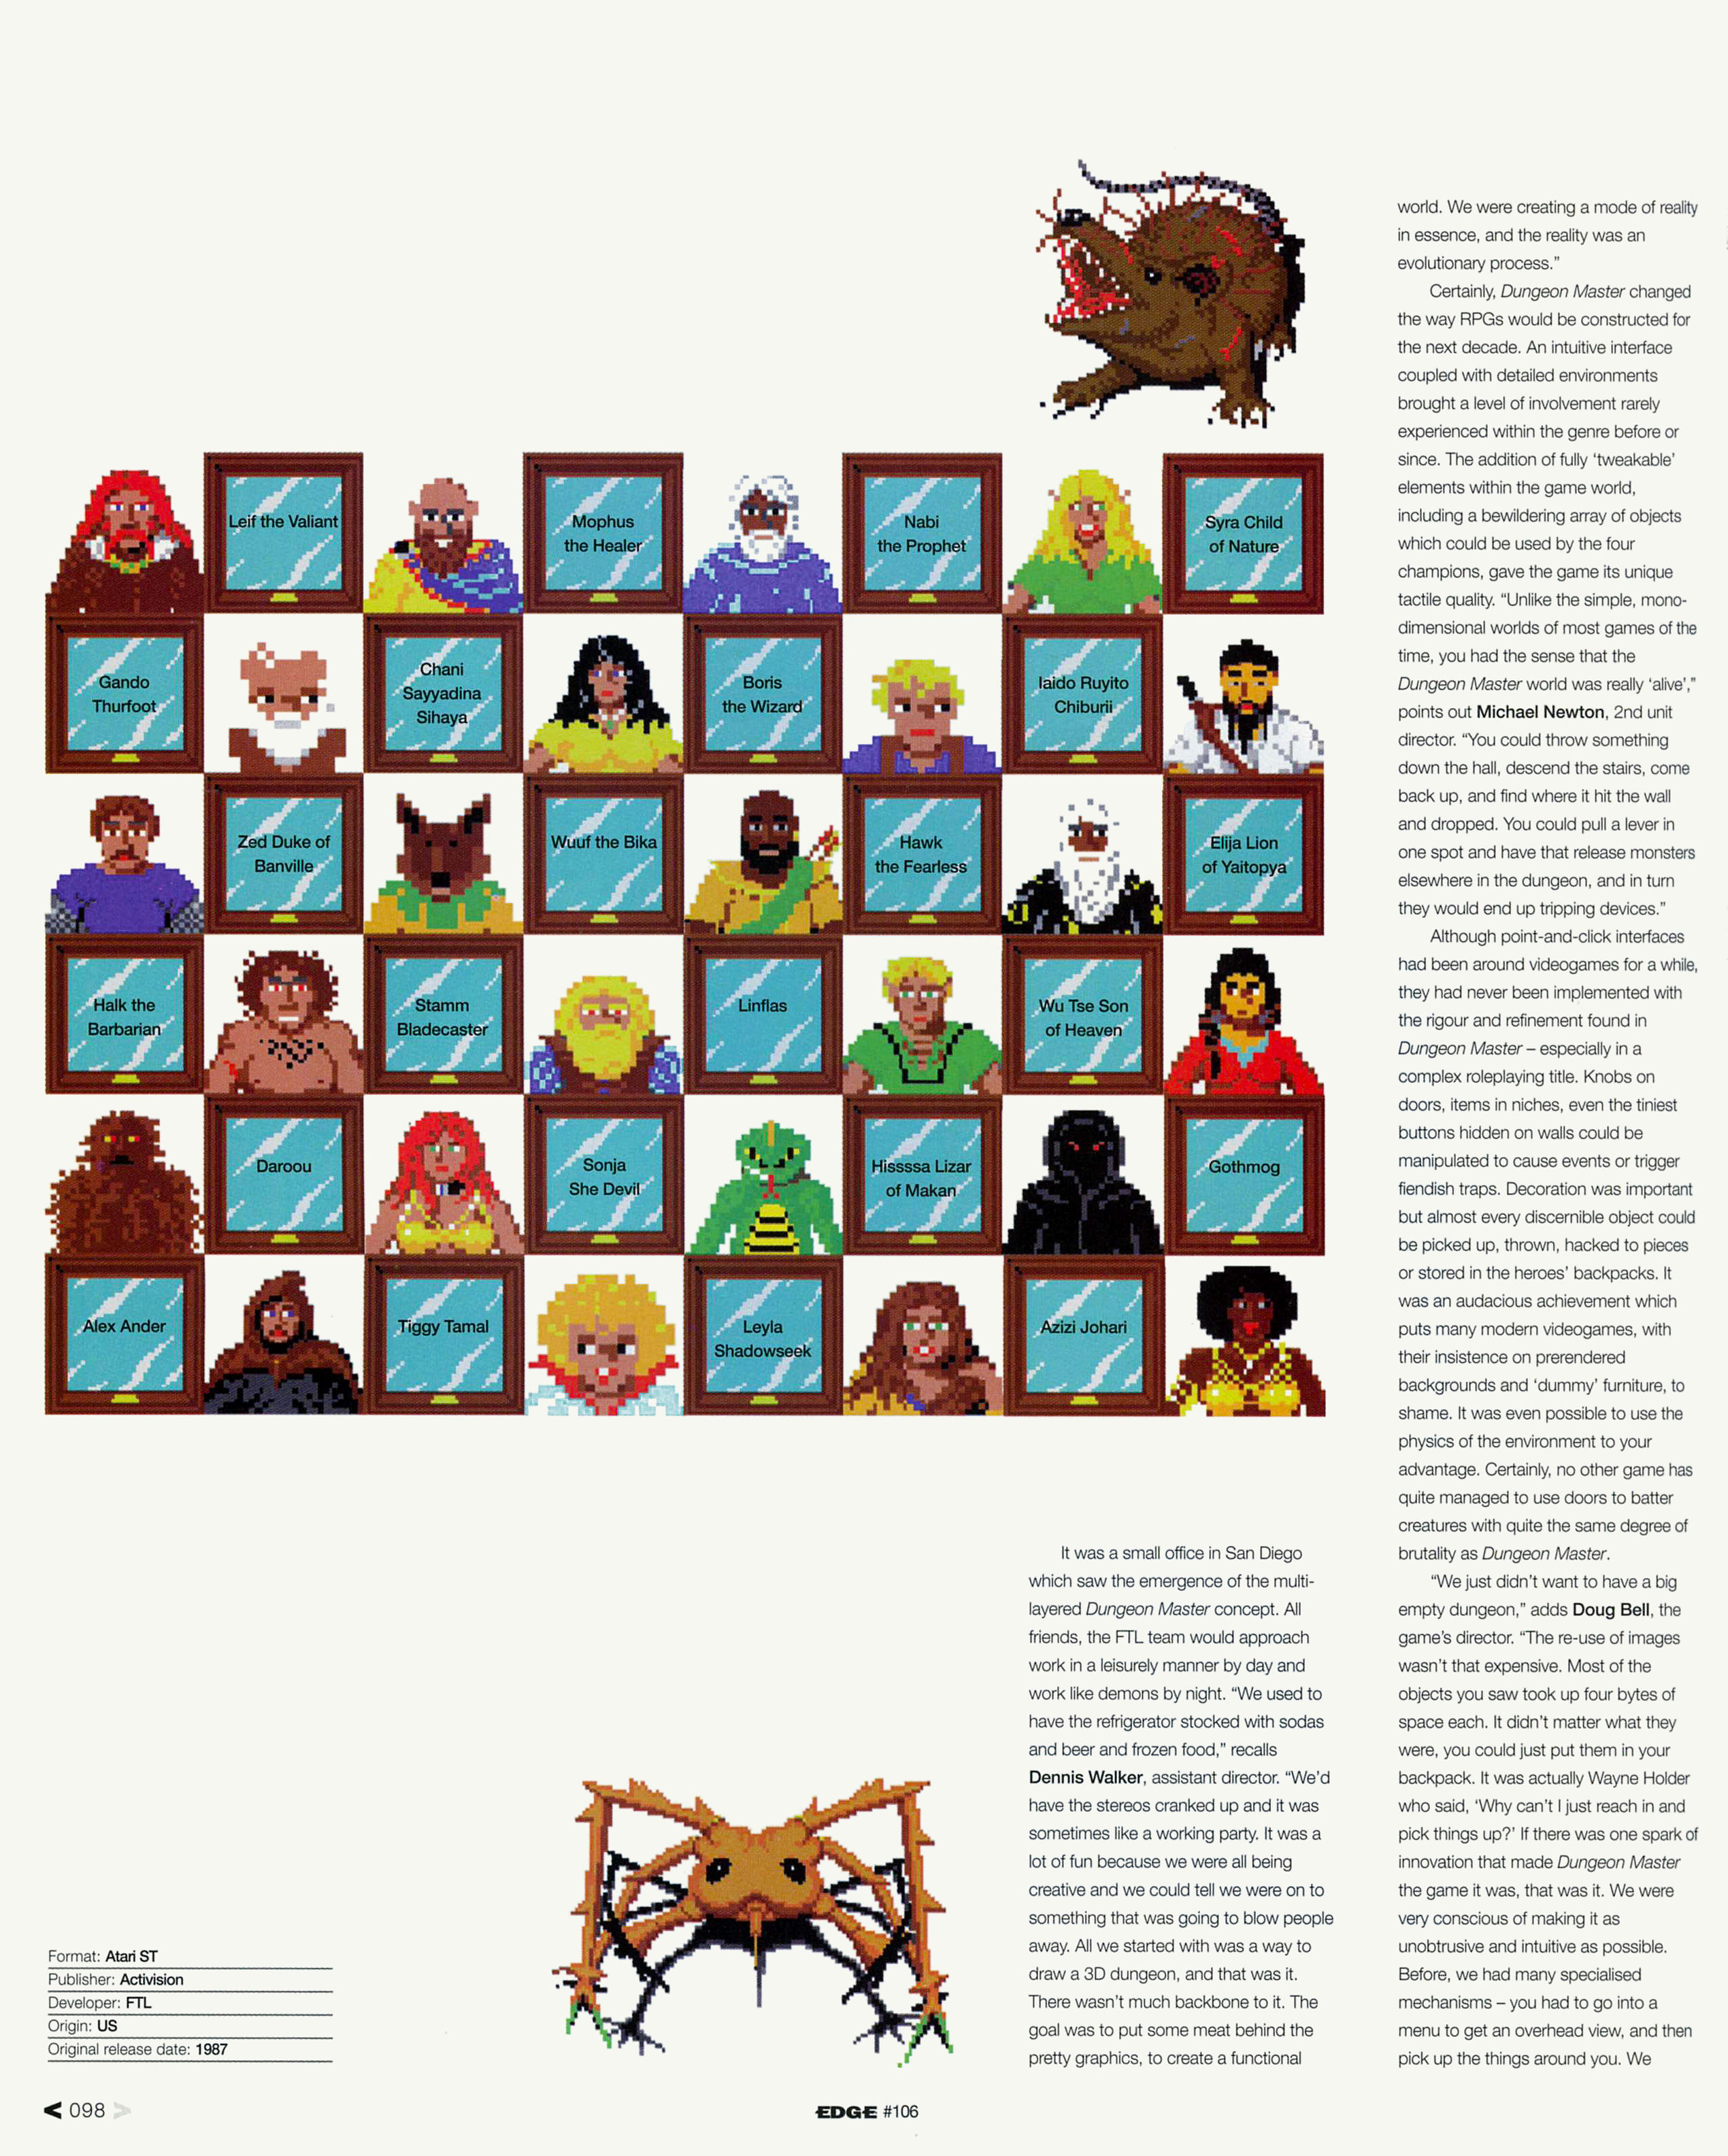 Dungeon Master Game Series Article published in British magazine 'Edge', Issue #106 January 2002, Page 98